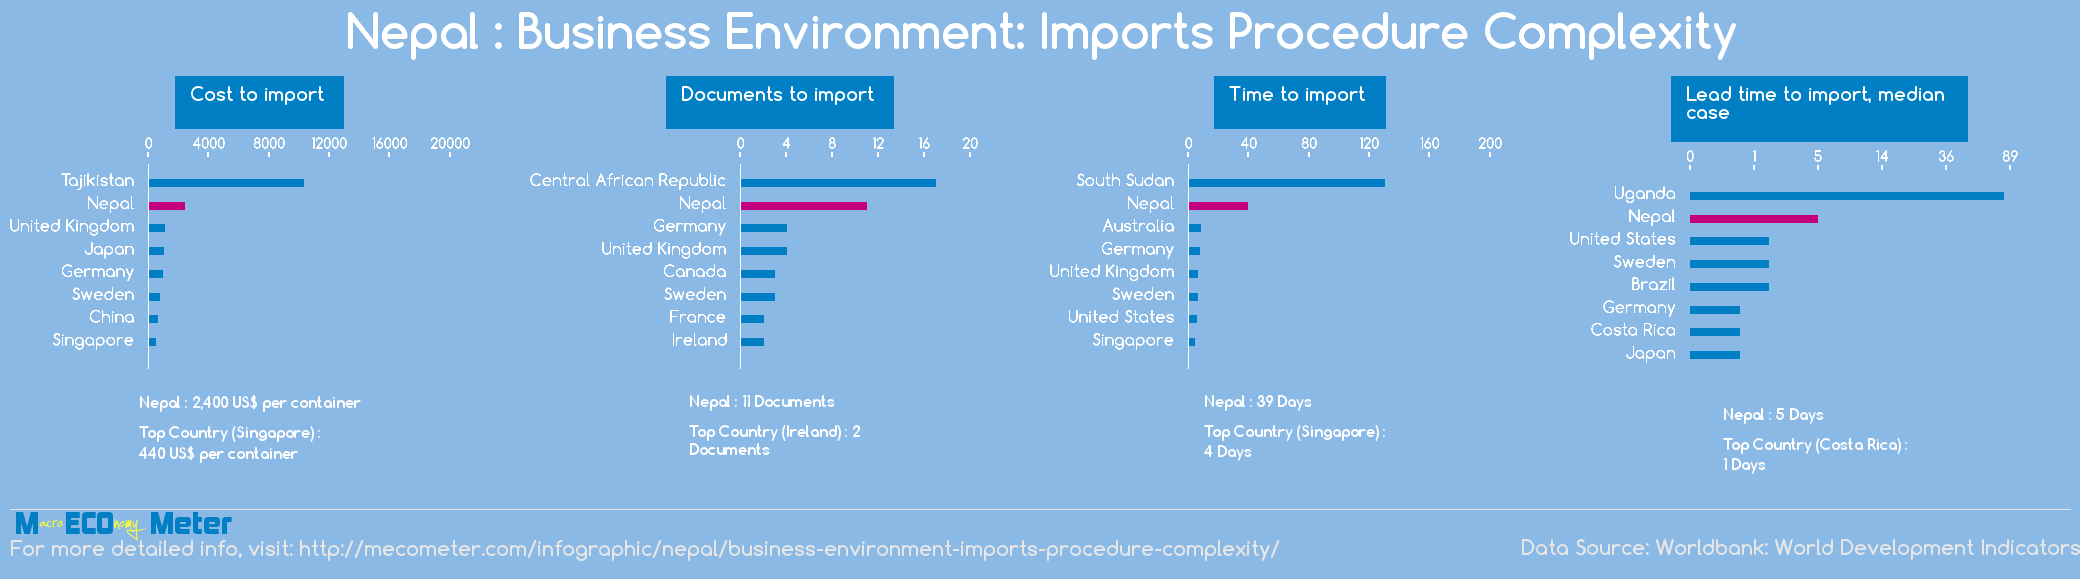 Nepal : Business Environment: Imports Procedure Complexity